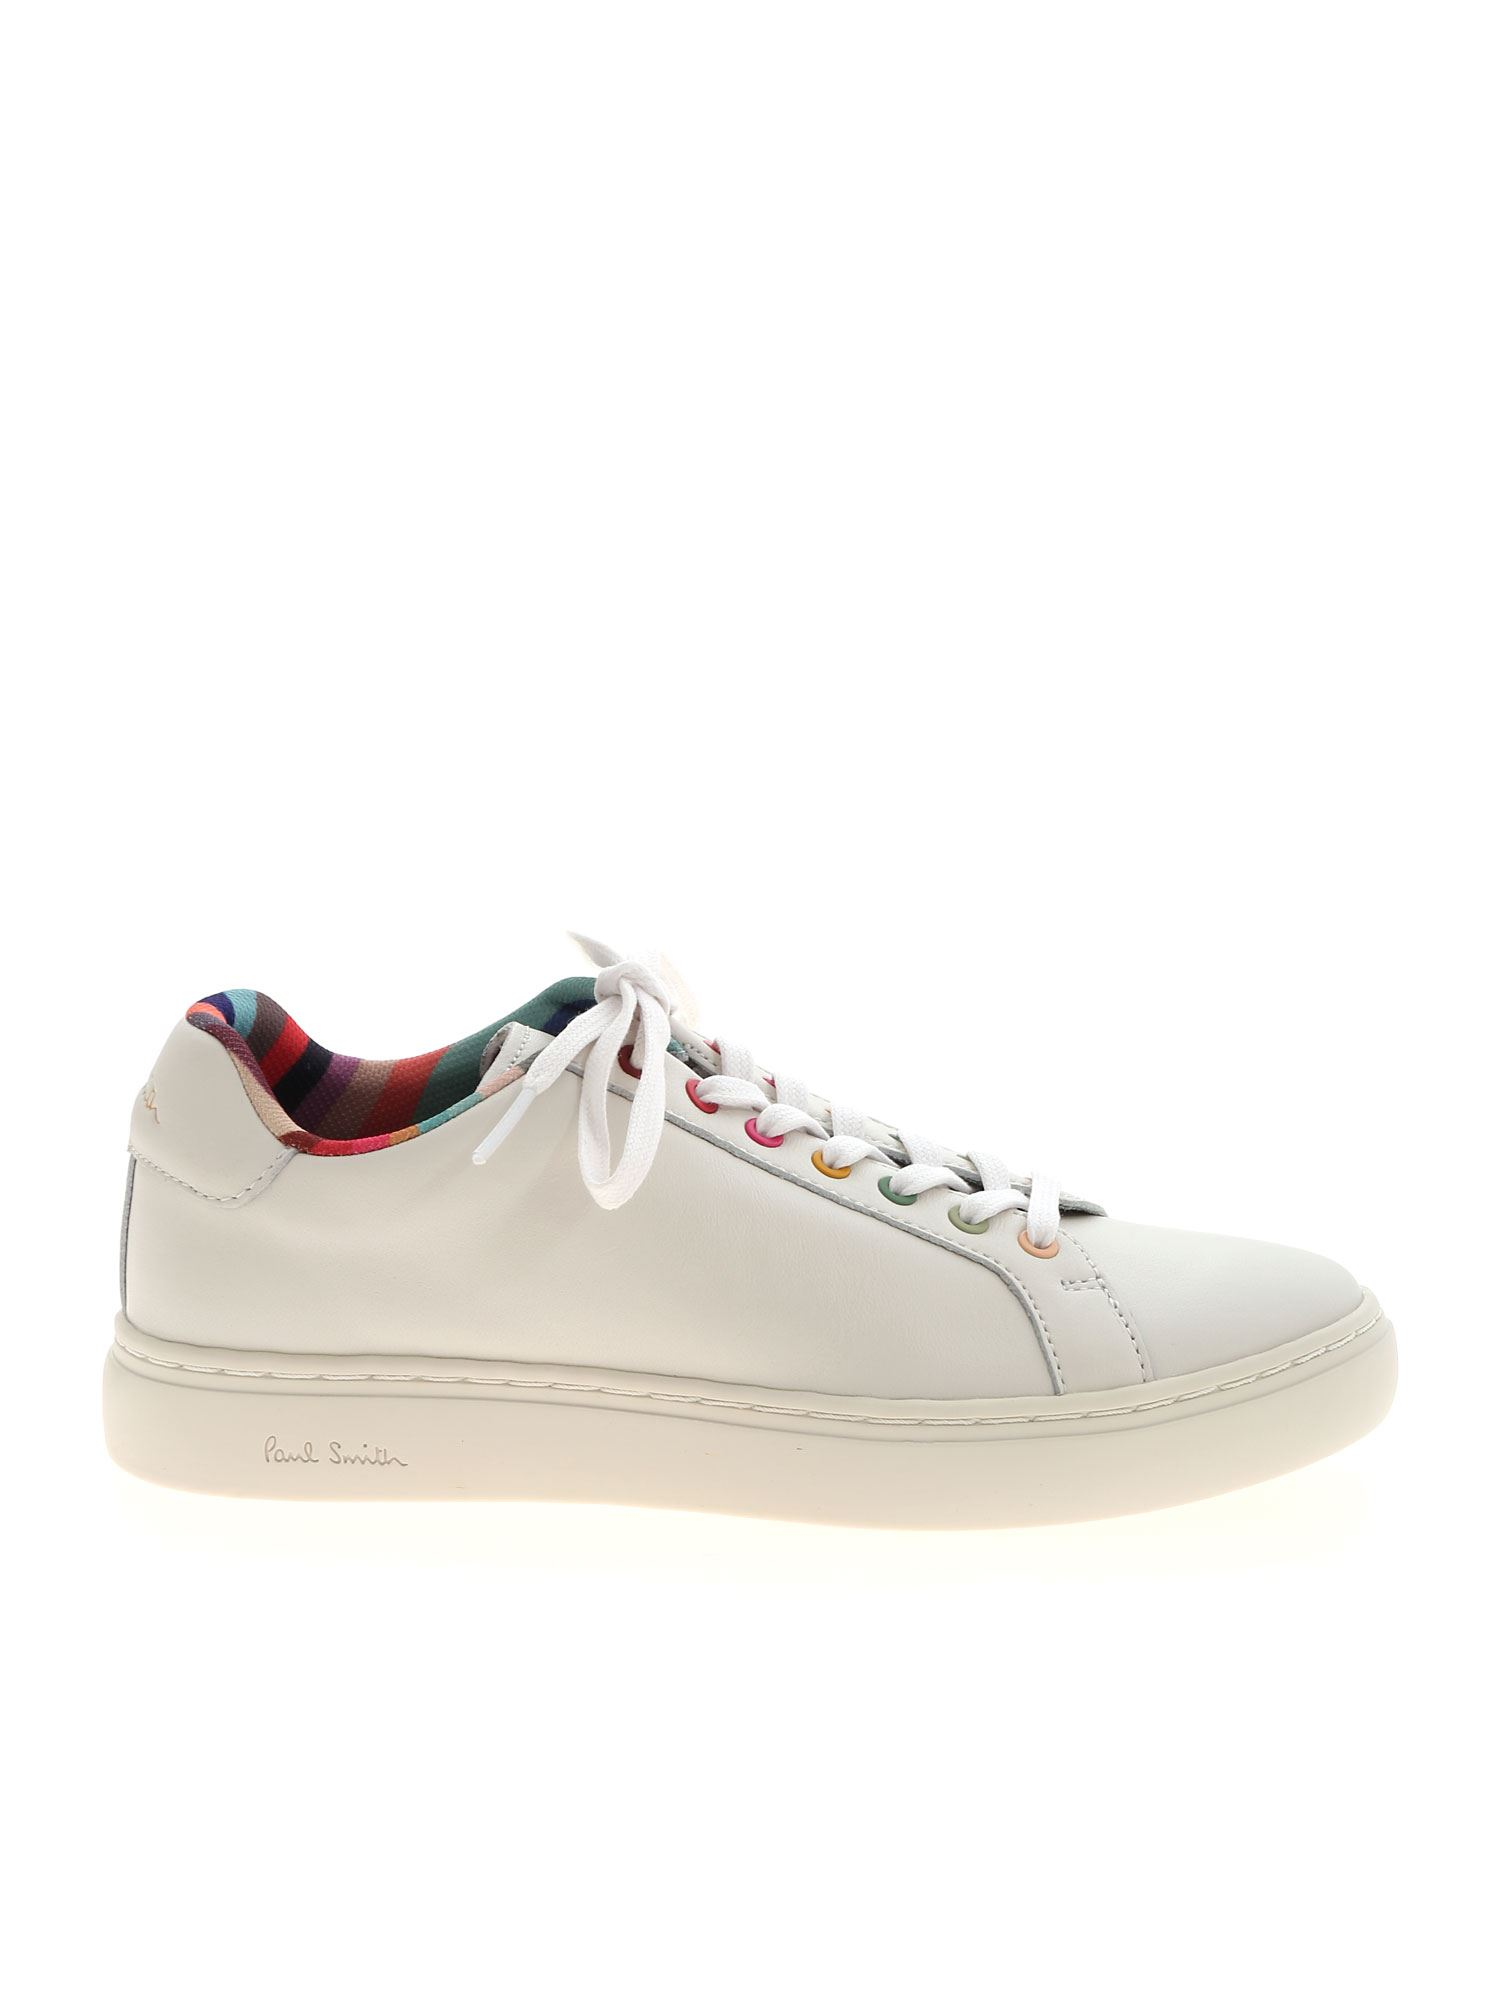 Paul Smith LAPIN SNEAKERS IN WHITE